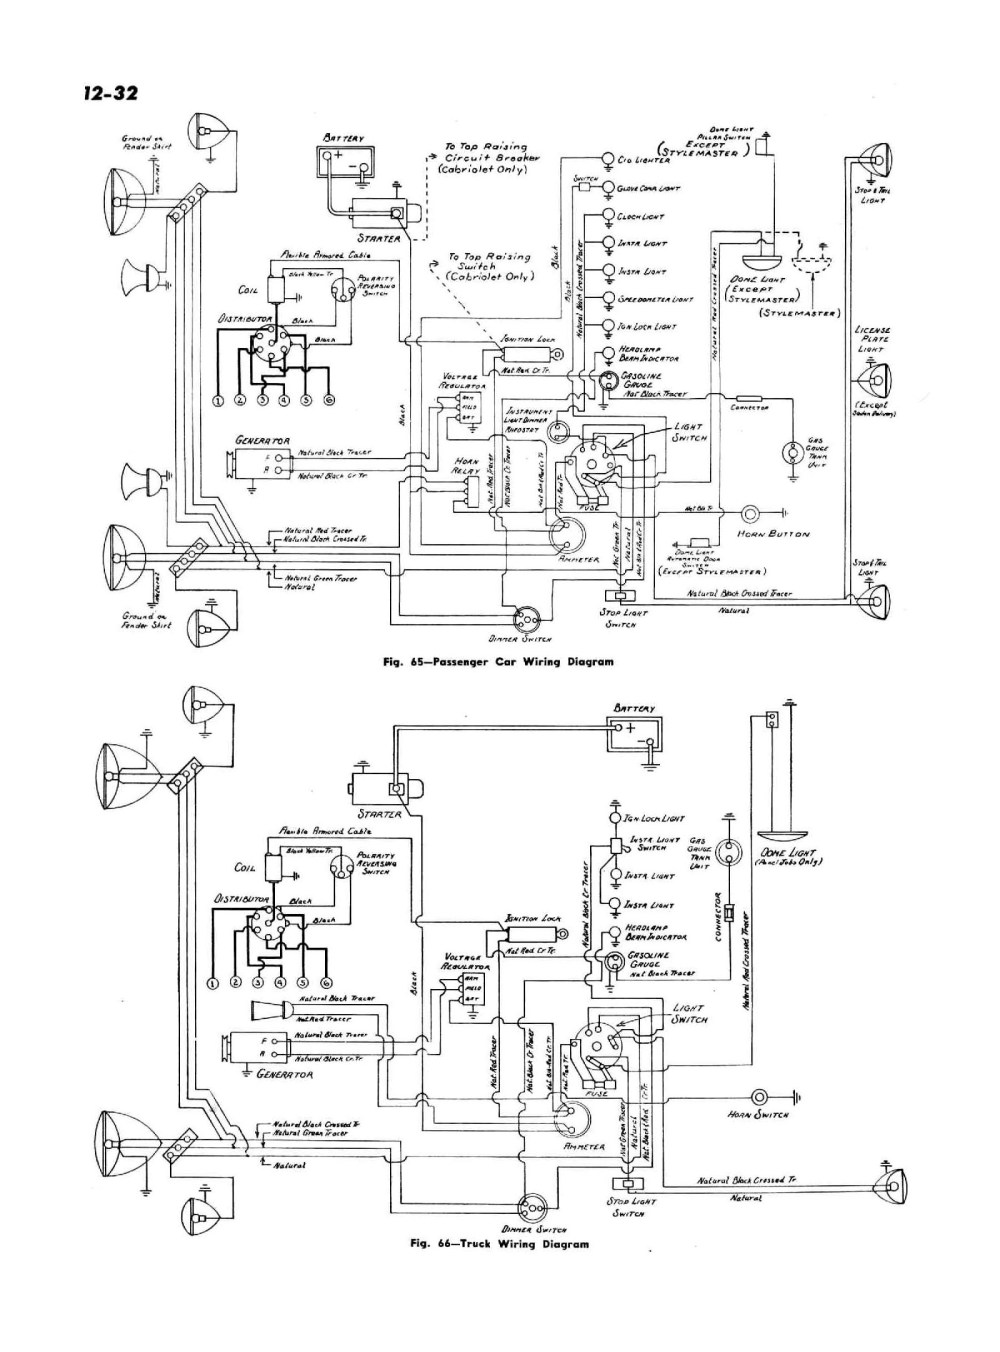 medium resolution of ih 1486 wiring diagram 1 5 pluspatrunoua de u2022ih 1486 wiring diagram best part of